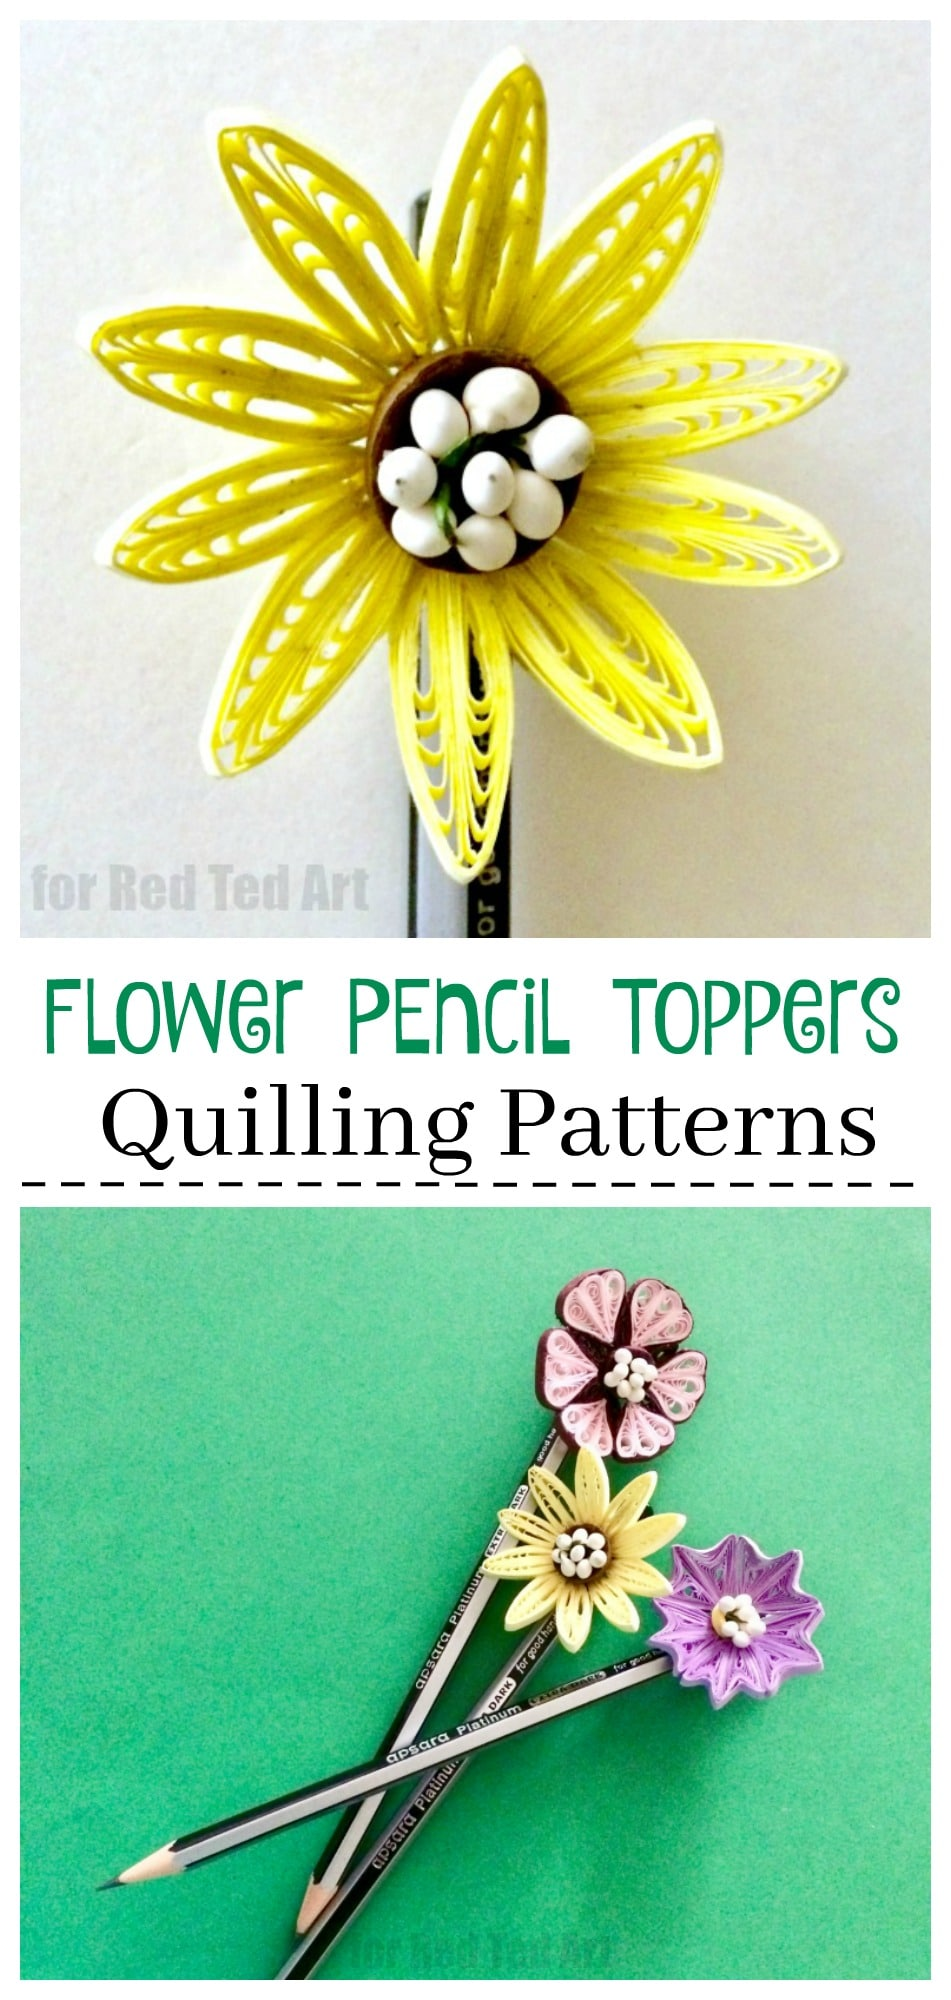 Flower Quilled Pencil Toppers Red Ted Arts Blog